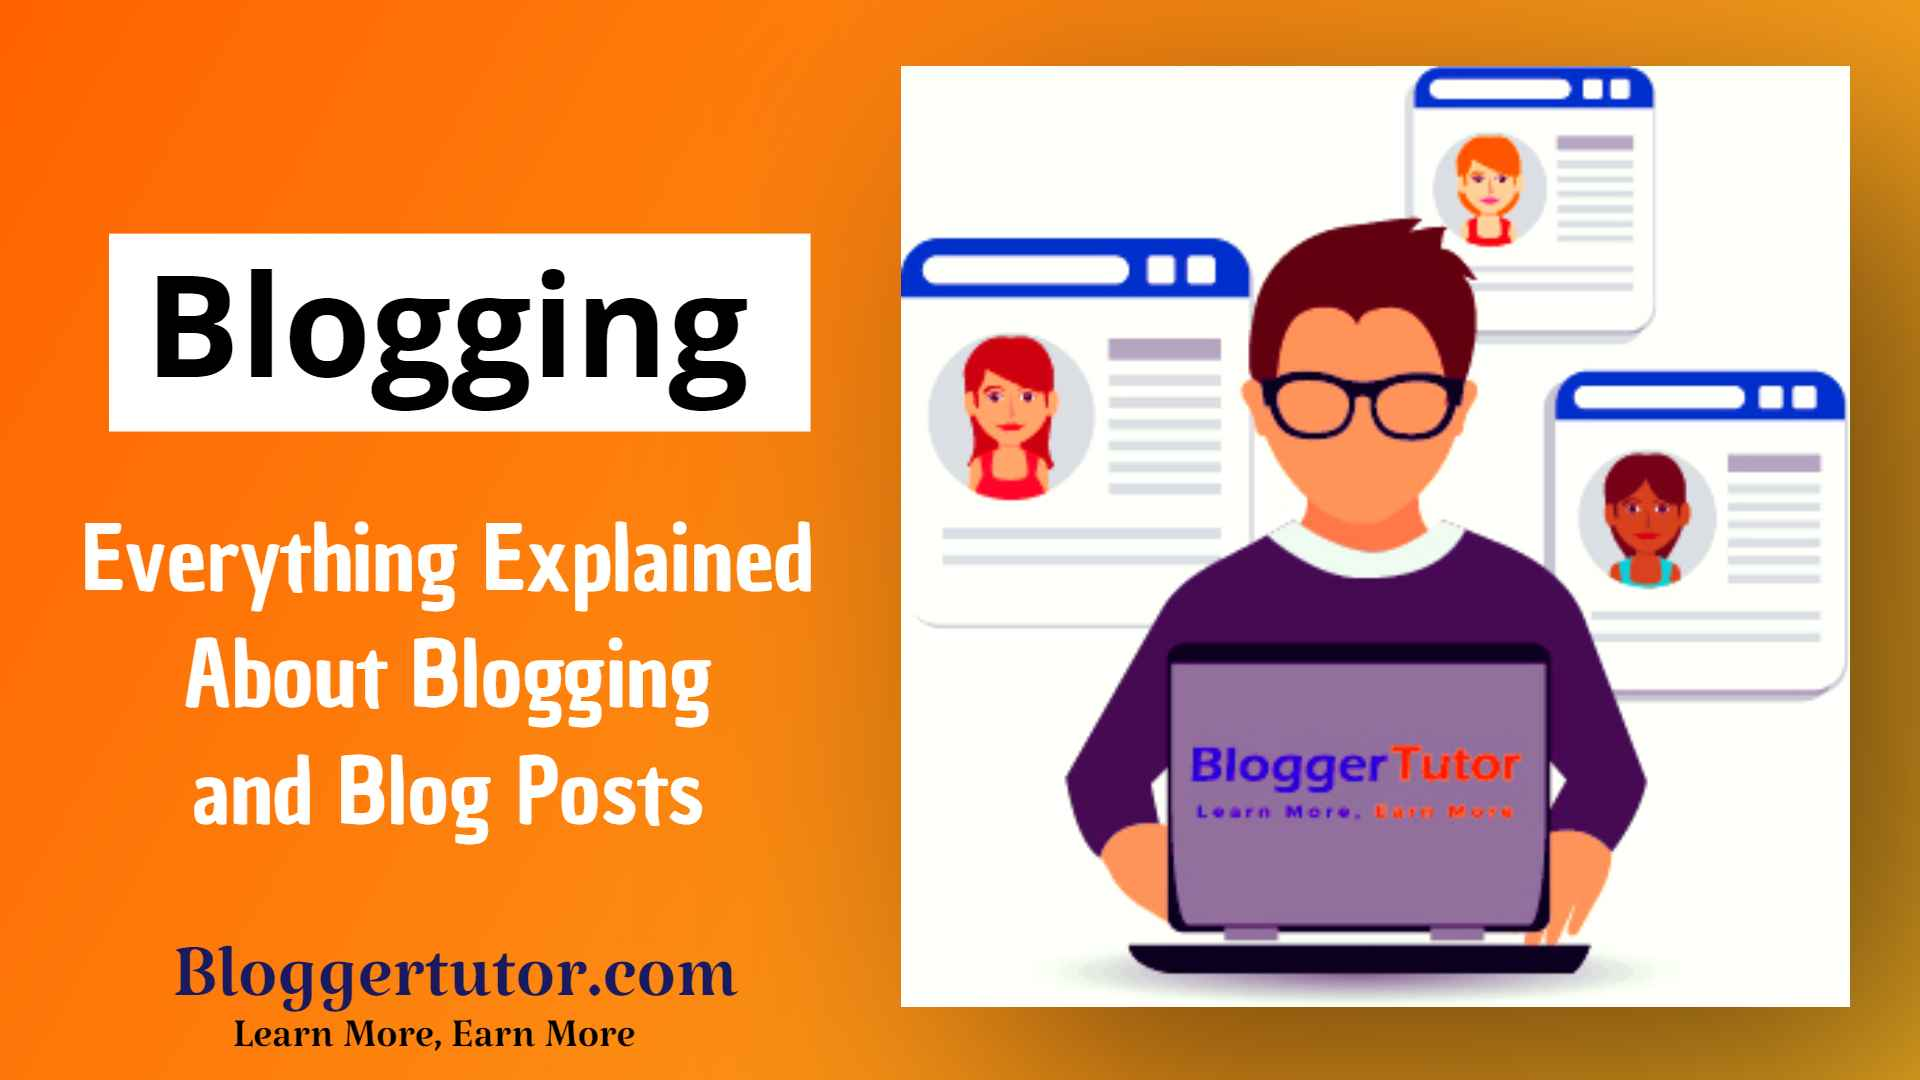 All About Blogging and Blog Posts